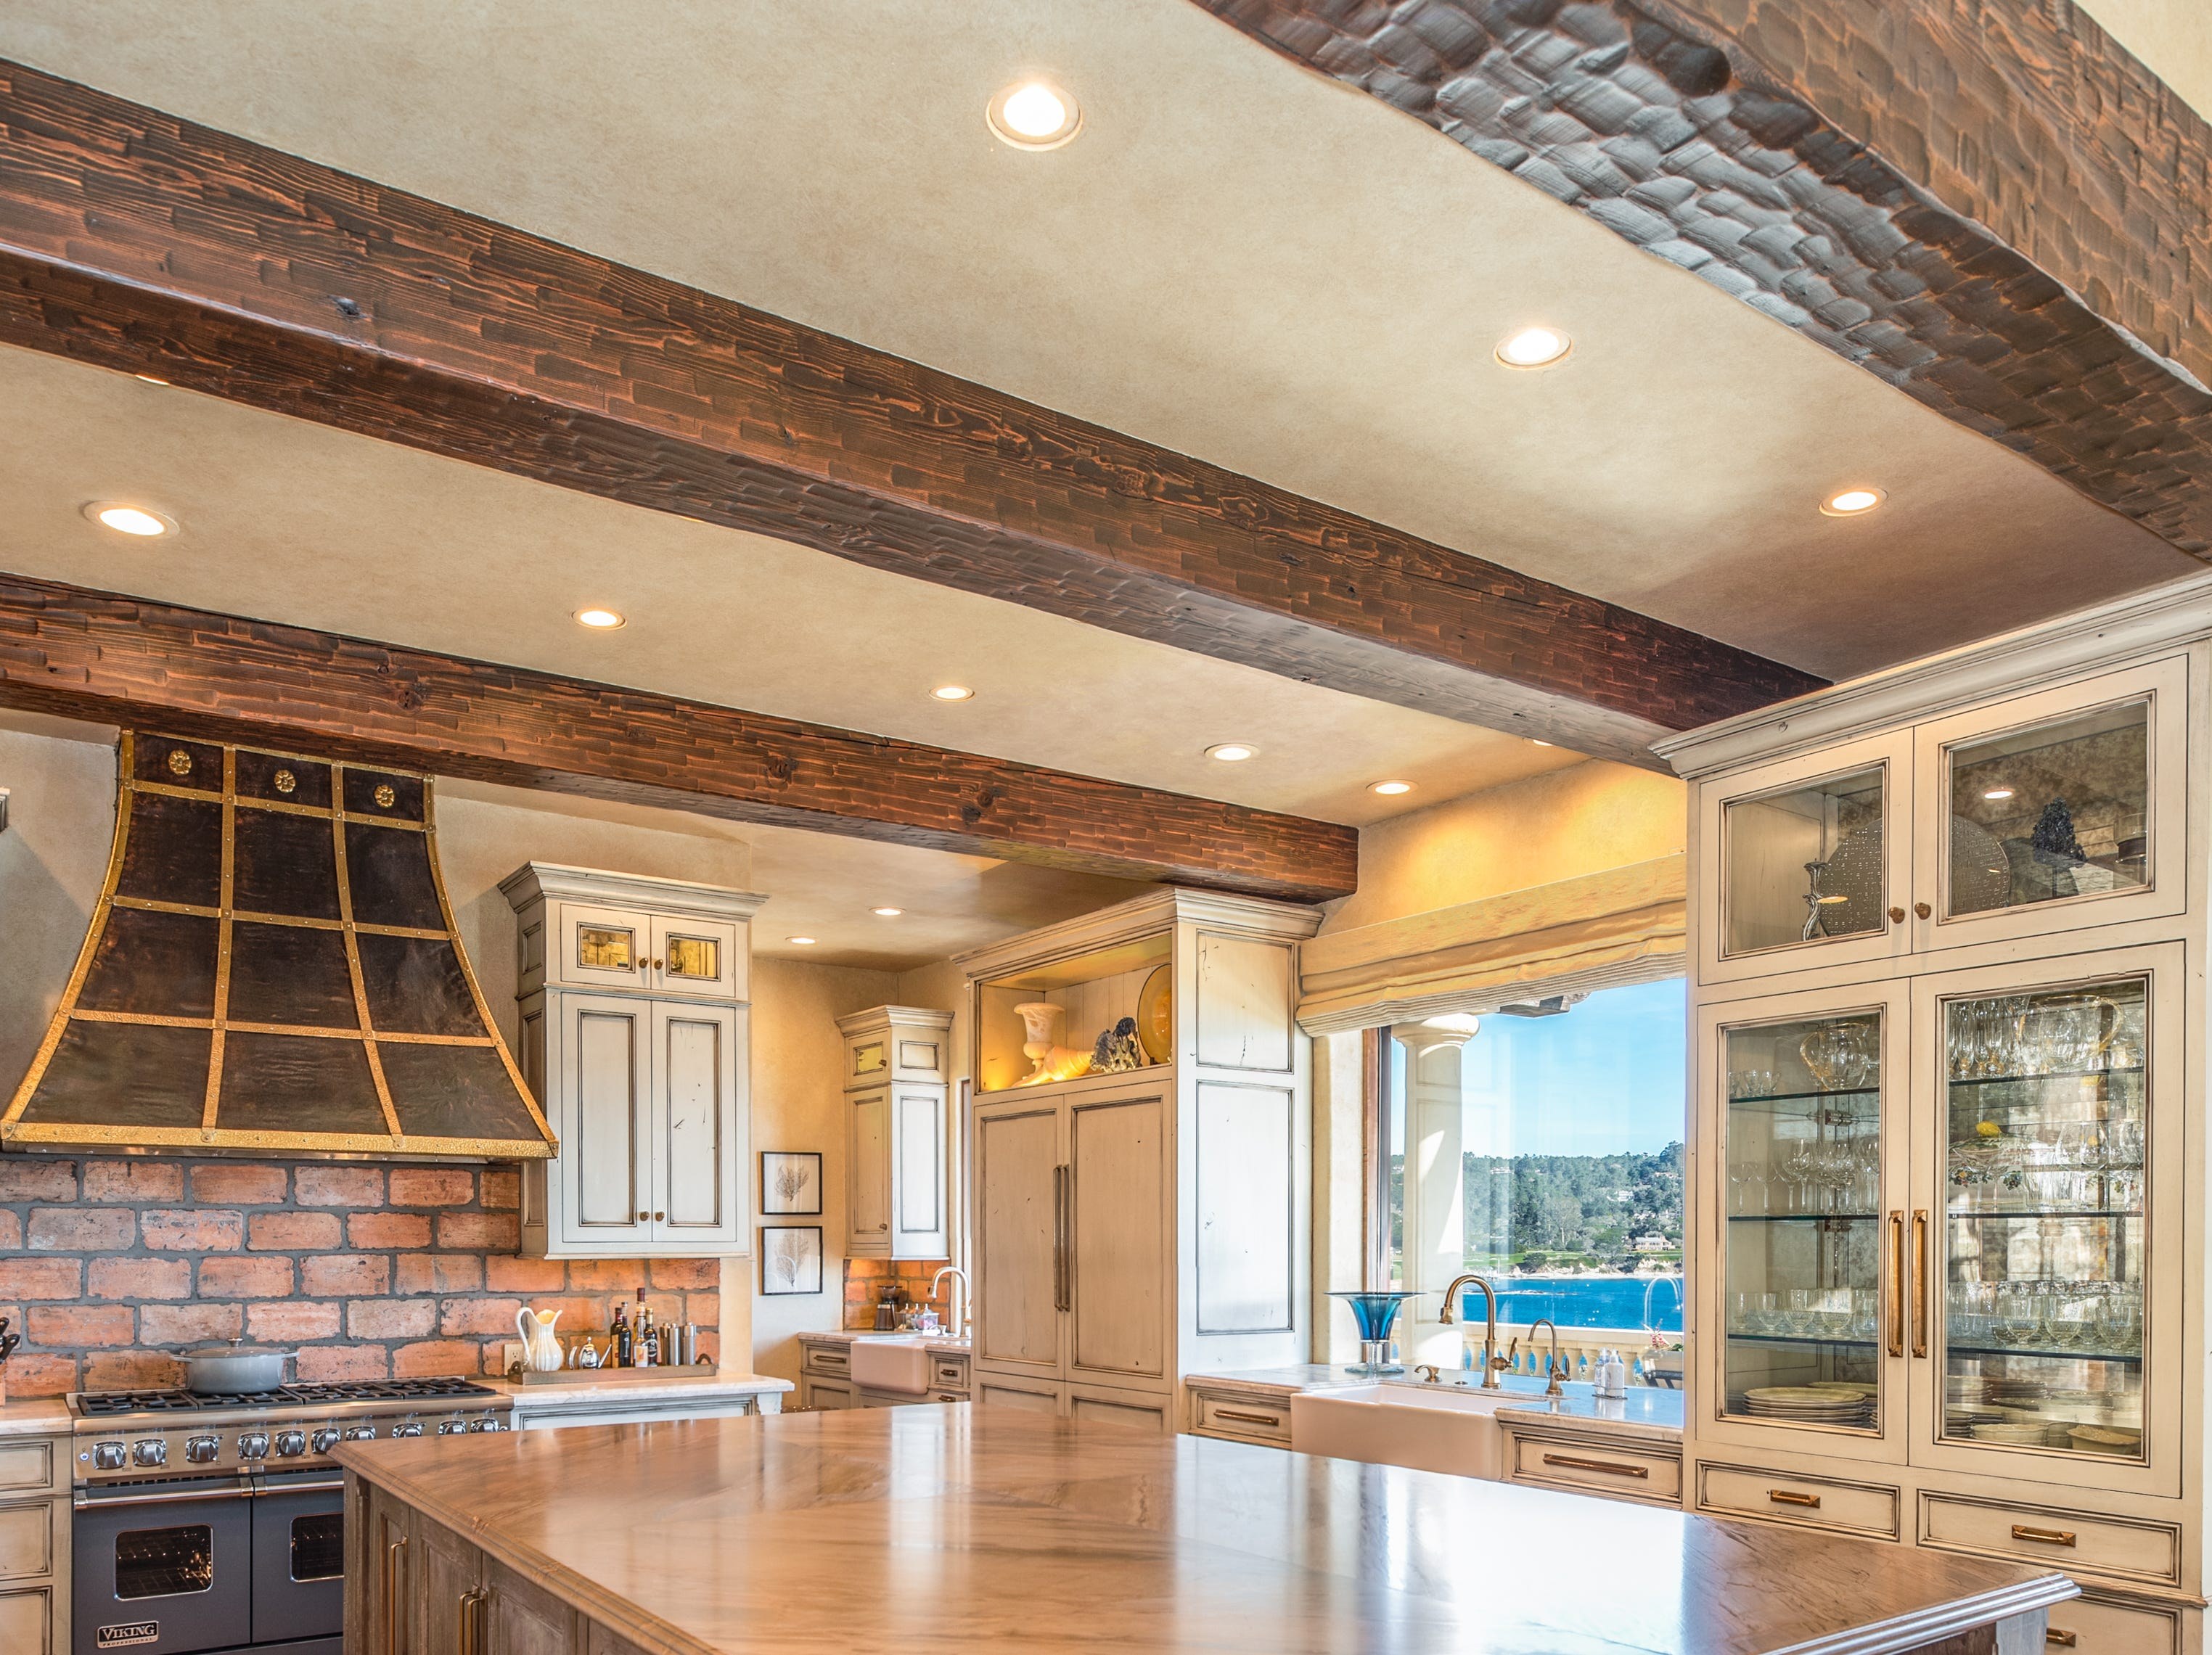 An ample island graces the center of the kitchen, providing storage, counter space and seating.